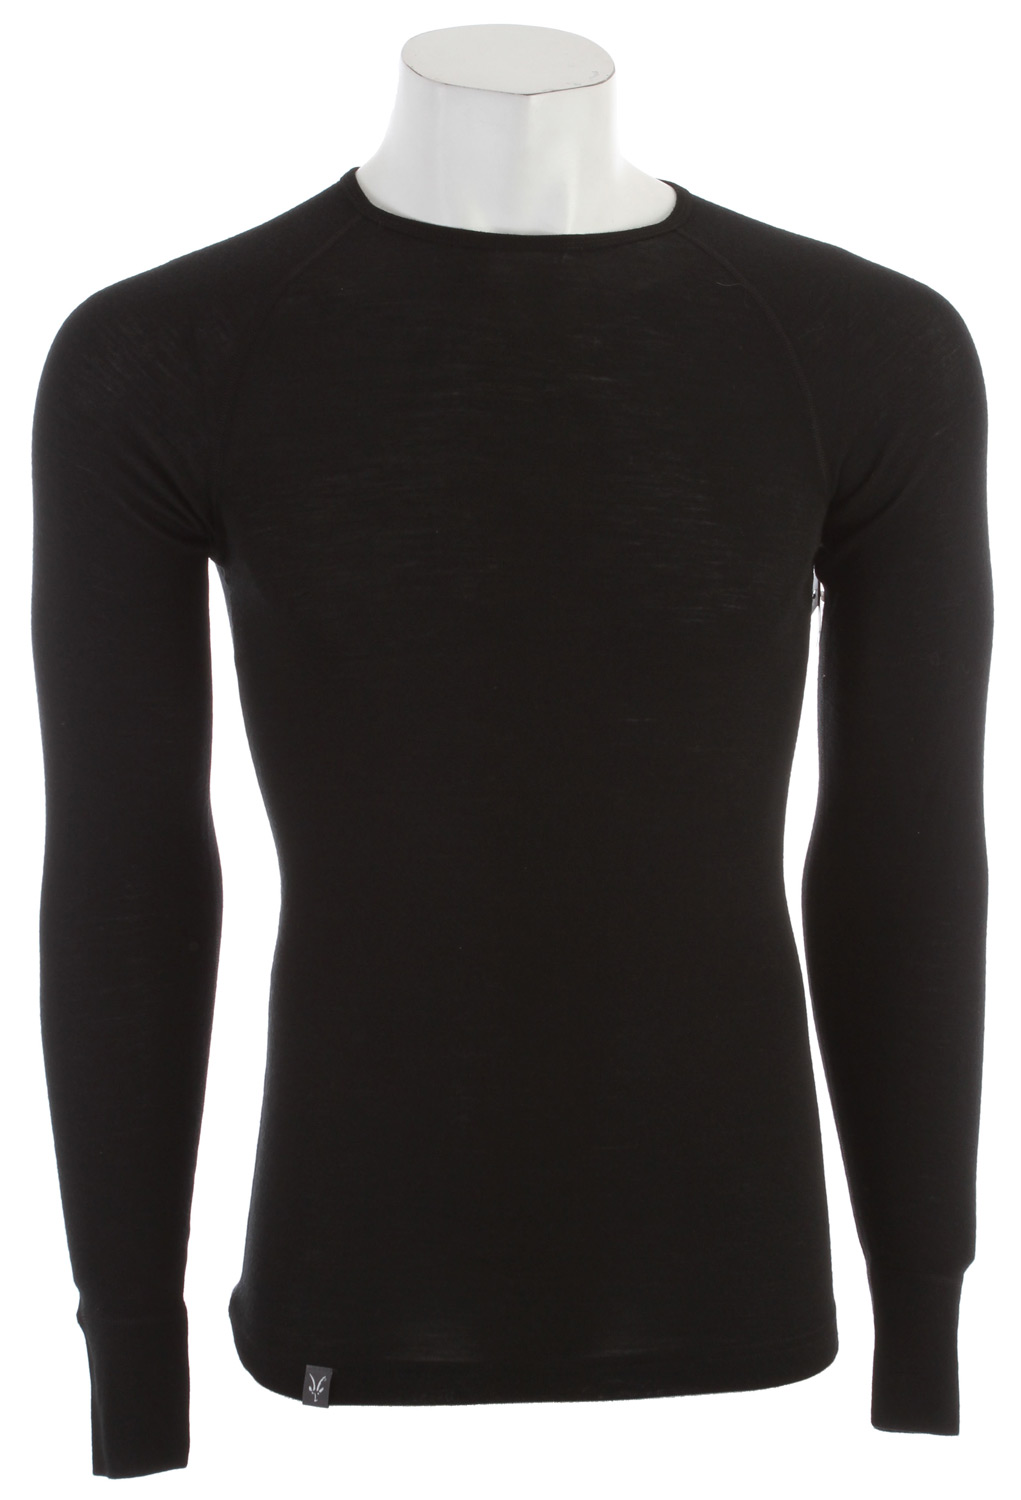 "Now a renown Ibex baselayer, the Woolies Crew is form fit with raglan sleeves and flat seams. 18.5 micron New Zealand Merino wool fabric forms a perfect 150g/m2 baselayer weight. Woolies: The 18.5 superfine wool yarn offers a warm, close-to-the-body fit that moves with you and keeps its shape. This award-winning, guide-approved ribbed fabric feels luxurious yet holds up in most rigorous conditions. The rib construction provides space for air permeability contributing to superior performance and excellent stretch and recovery. Naturally odor resistant, or ""no stink"" is a huge bonus. First layer on, last off, you'll be so comfortable you'll forget you're wearing anything! Machine washable.Key Features of the Ibex Woolies 150 Crew Baselayer Top: Lightest Ibex base layer Form-fit Flatlock seams Raglan sleeves Wide cuff detail Tag-free labels Made in Canada 18.5 micron 100% Zque New Zealand Merino wool 150 g/m2 Garment Weight (oz): 6.4 oz - $79.95"